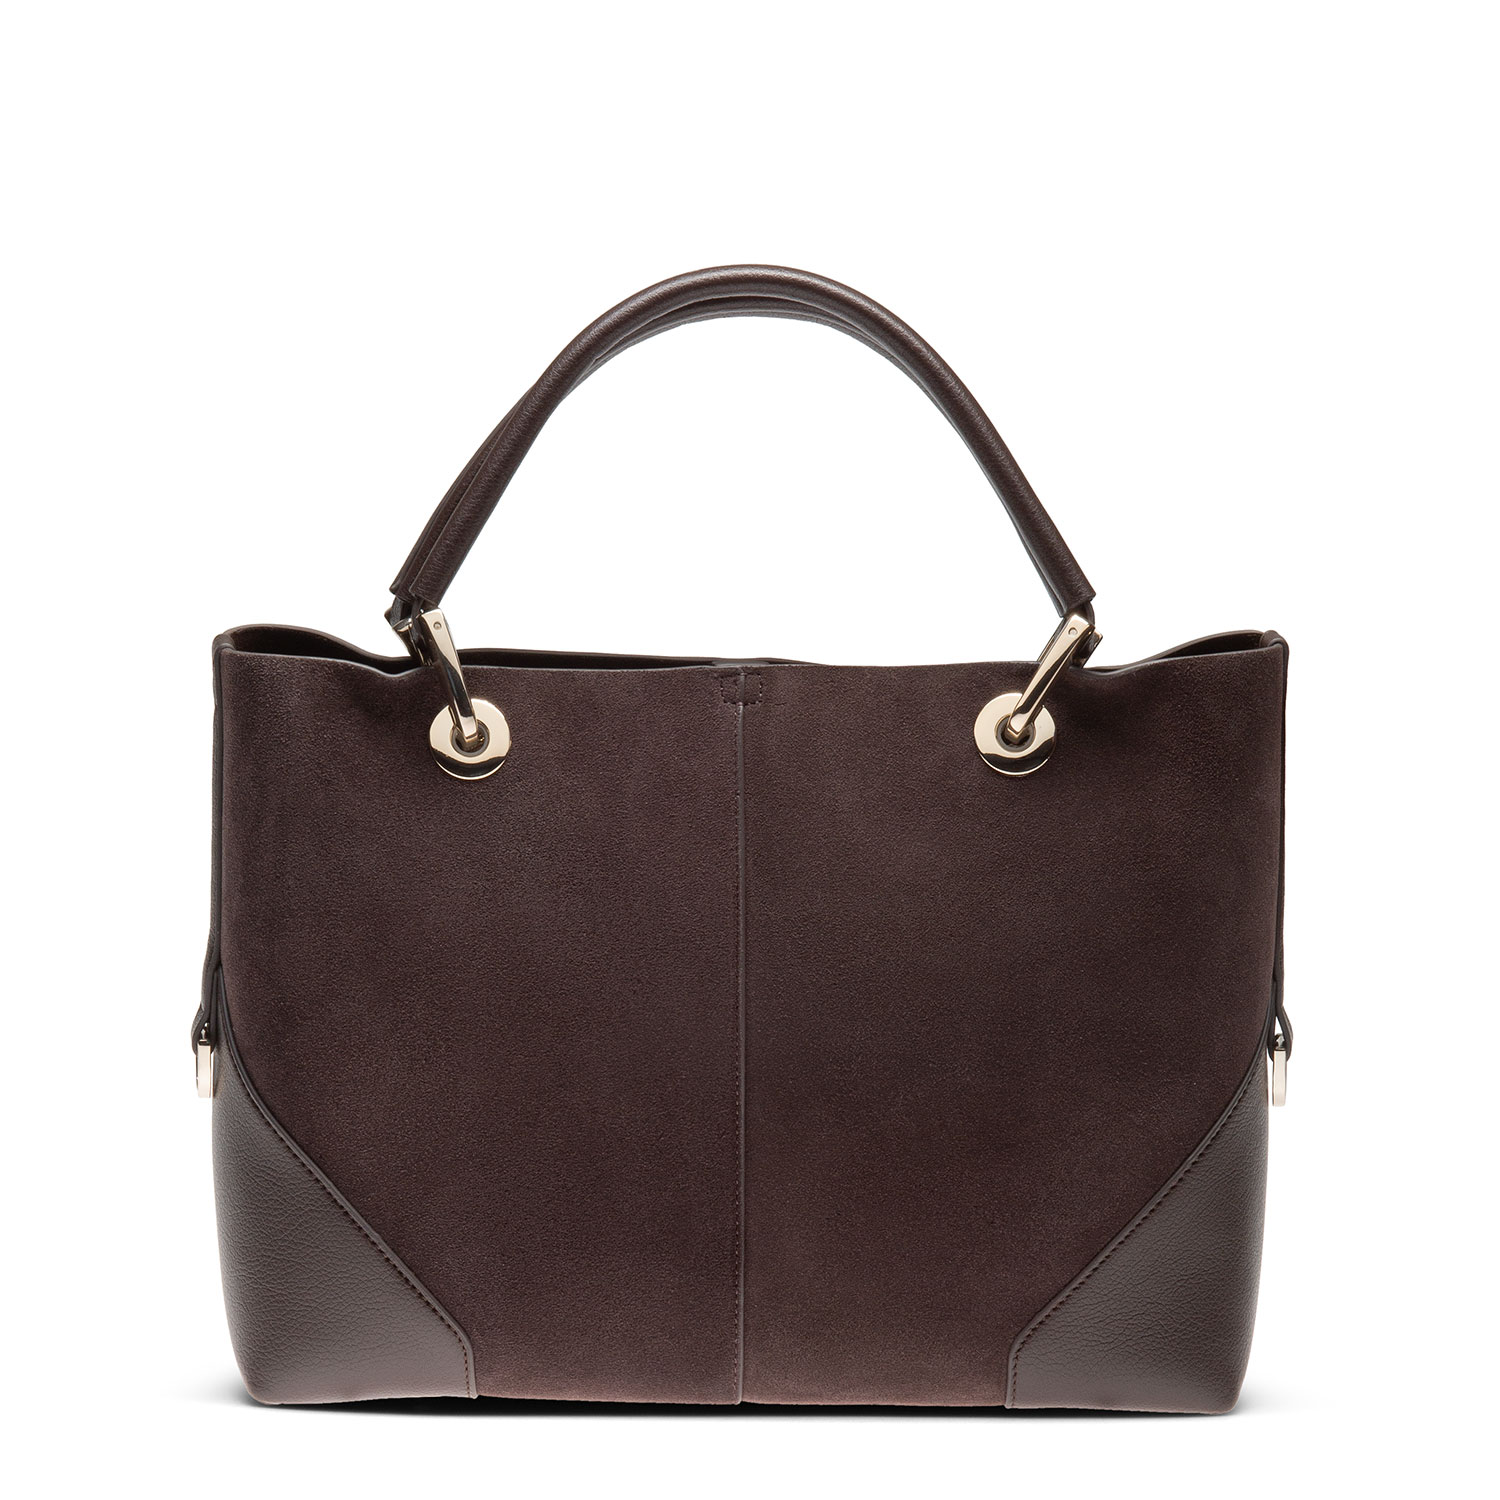 BORSA SHOPPING PAZOLINI PS-N3635-2